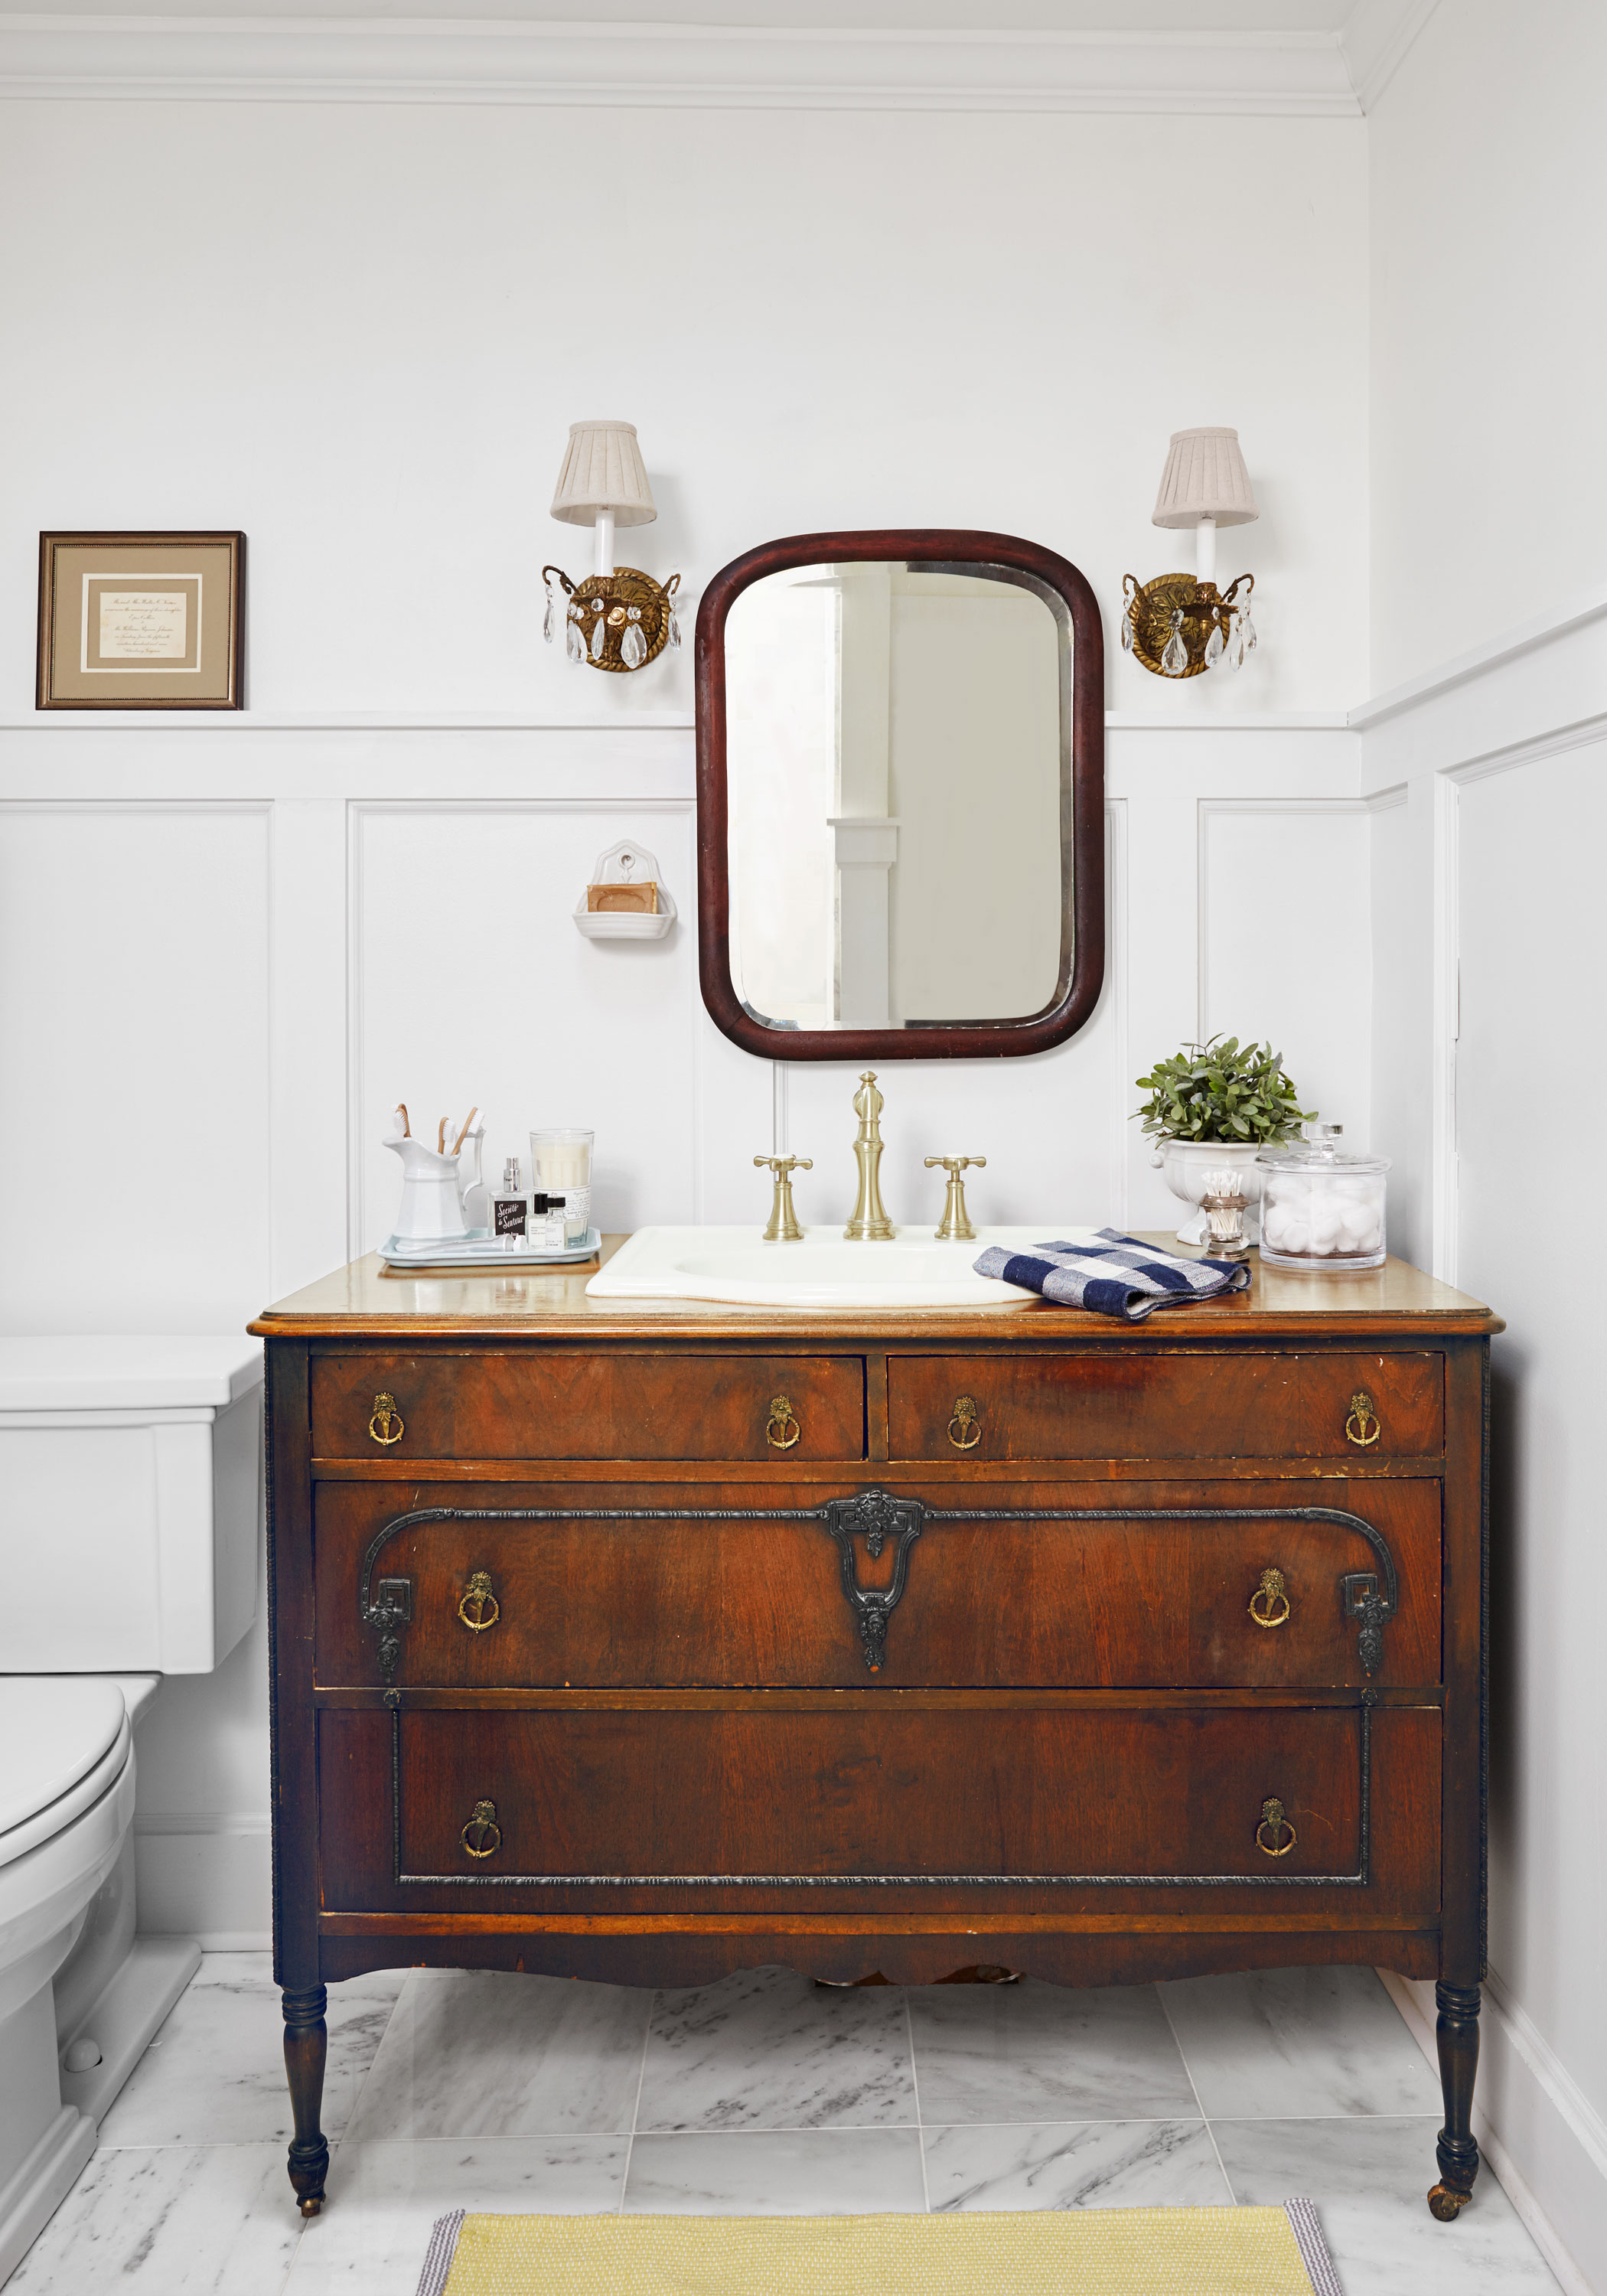 Country bathroom ideas - 80 Best Bathroom Decorating Ideas Decor Design Inspirations For Bathrooms